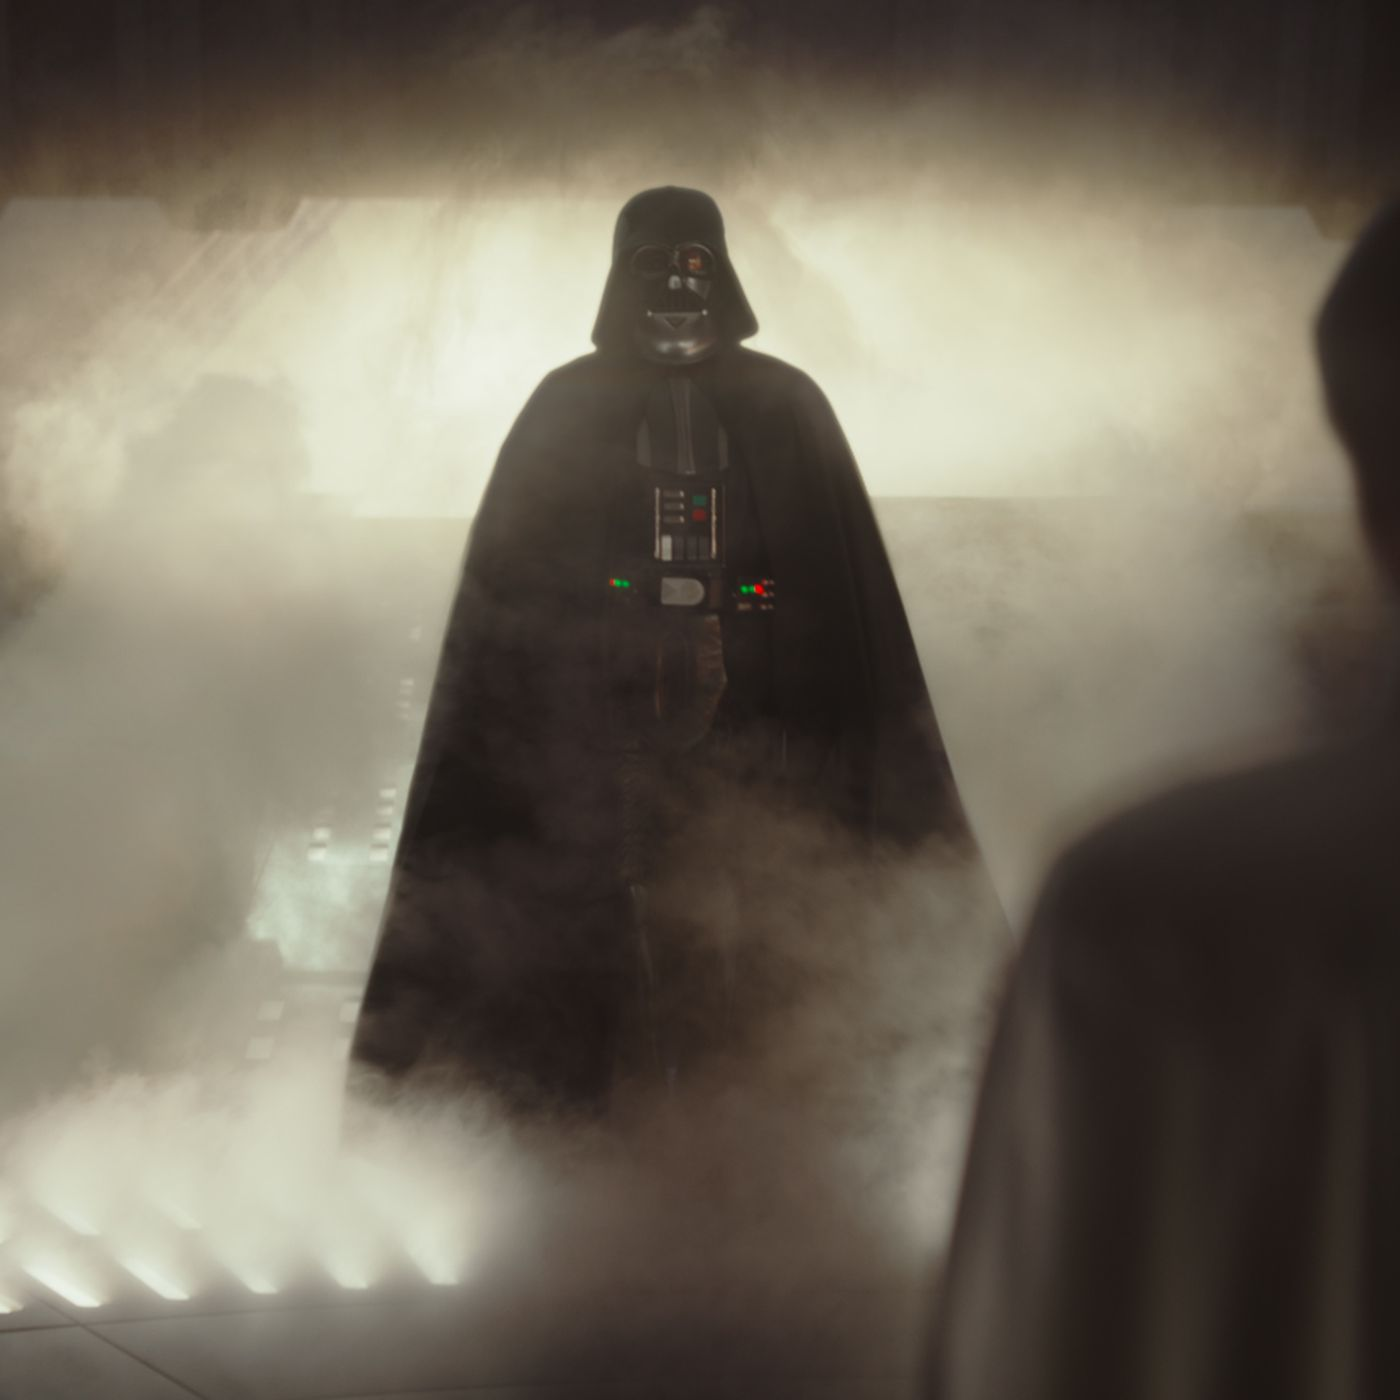 Rogue One S Darth Vader Is The Most Melodramatic We Ve Seen Yet